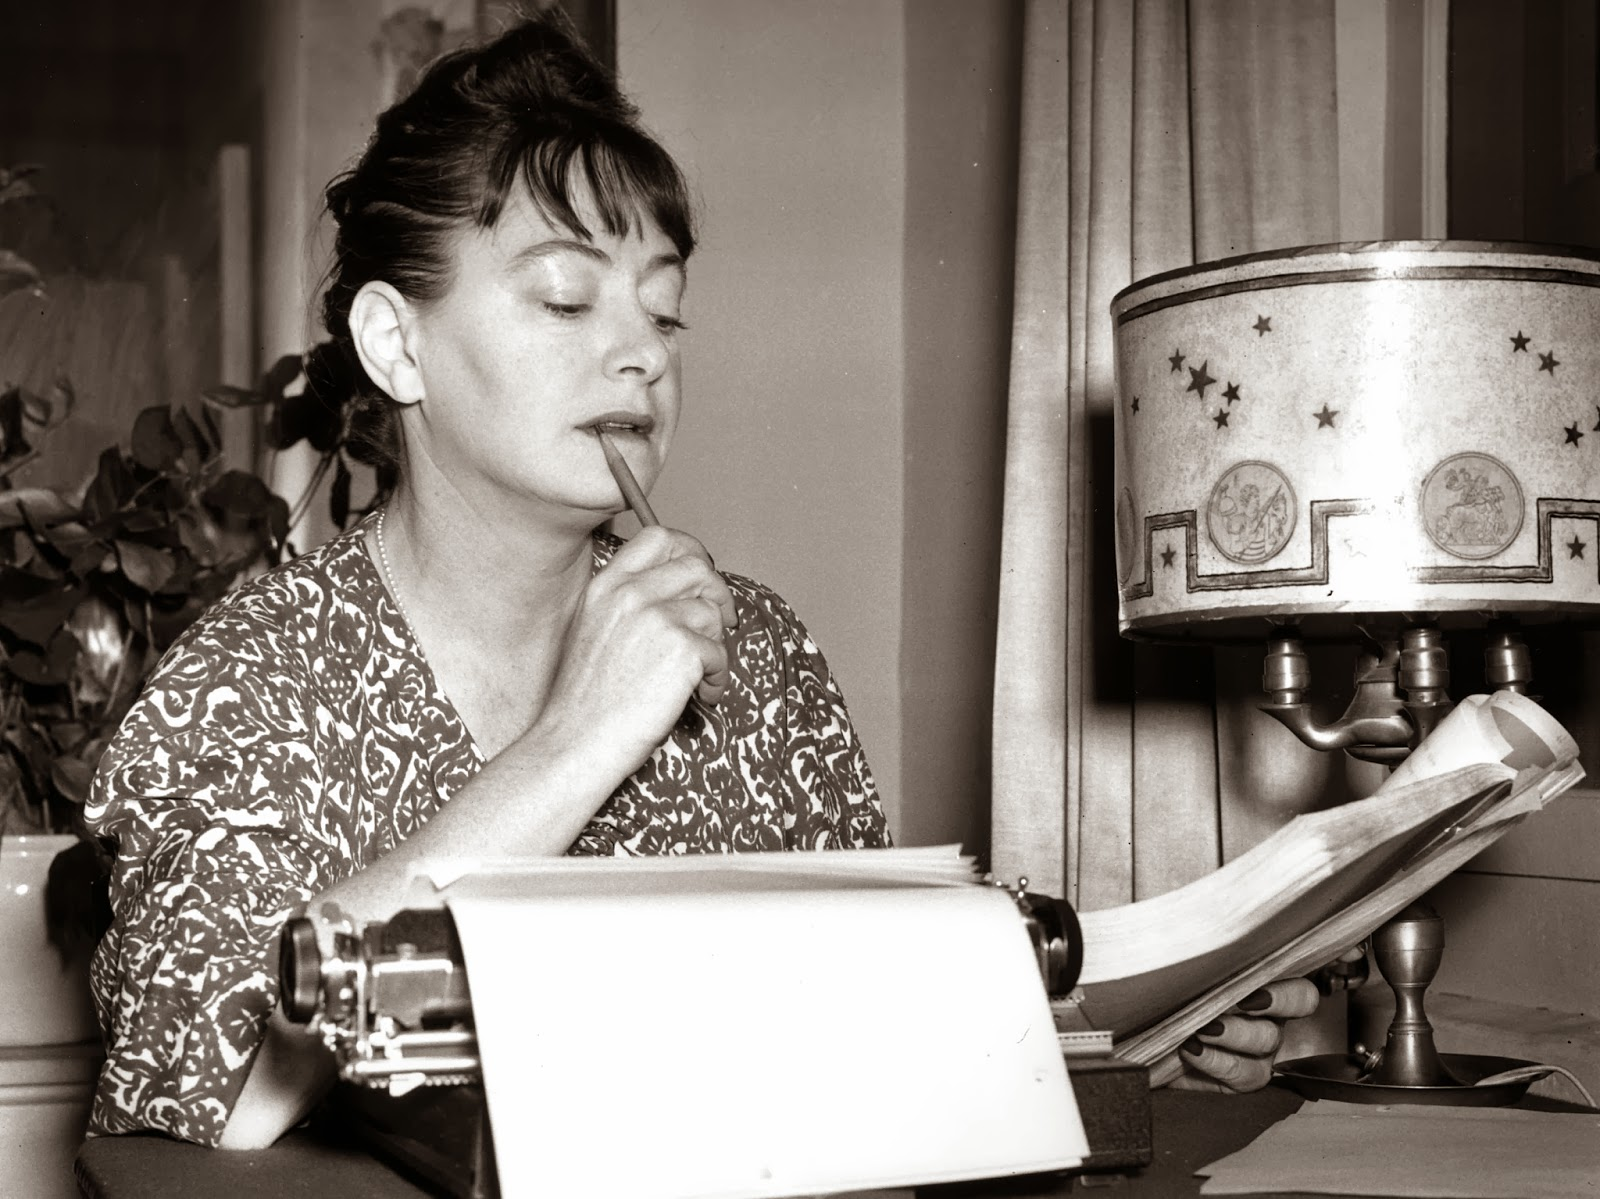 dorothy essay parkers By collection dorothy duncan essay favorite parker quagmire collection dorothy essay parker search for.